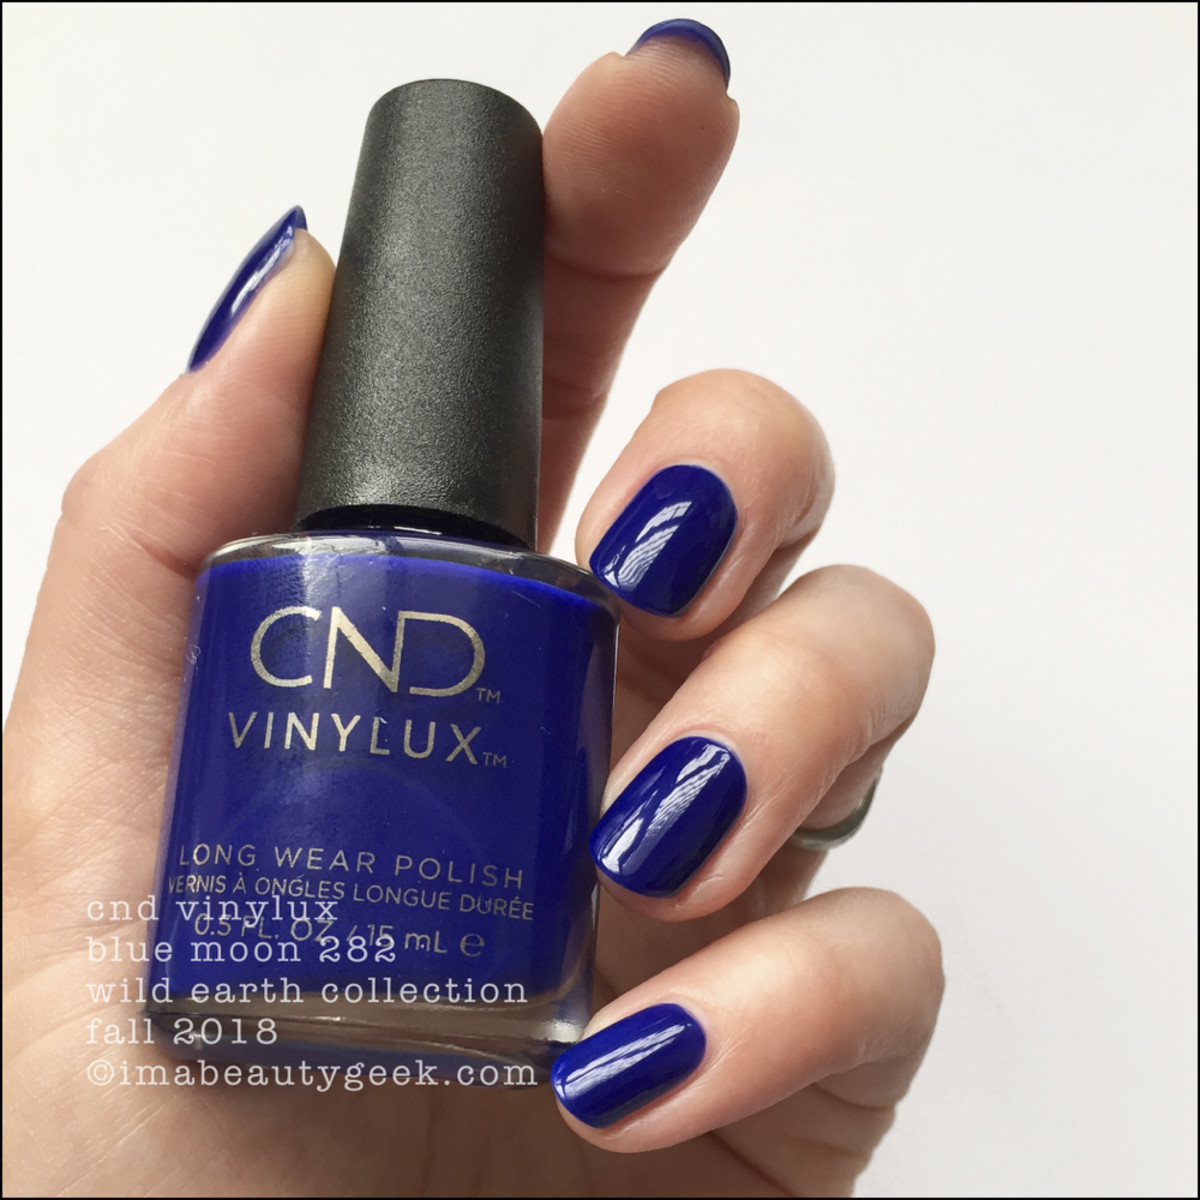 CND Vinylux Blue Moon 282 - CND Wild Earth Fall 2018